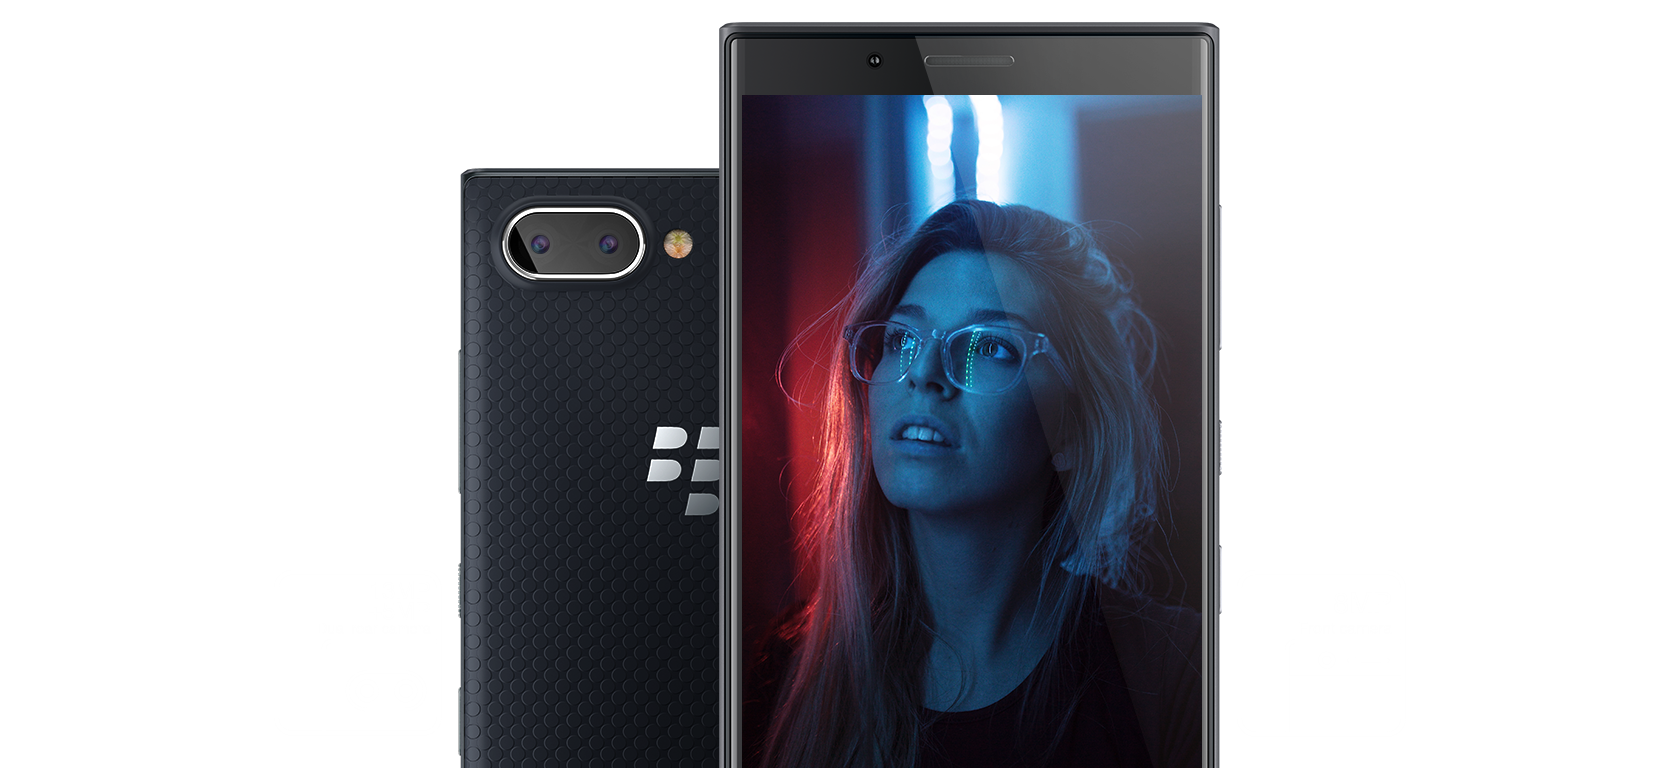 dual camera - BlackBerry KEY 2 LE